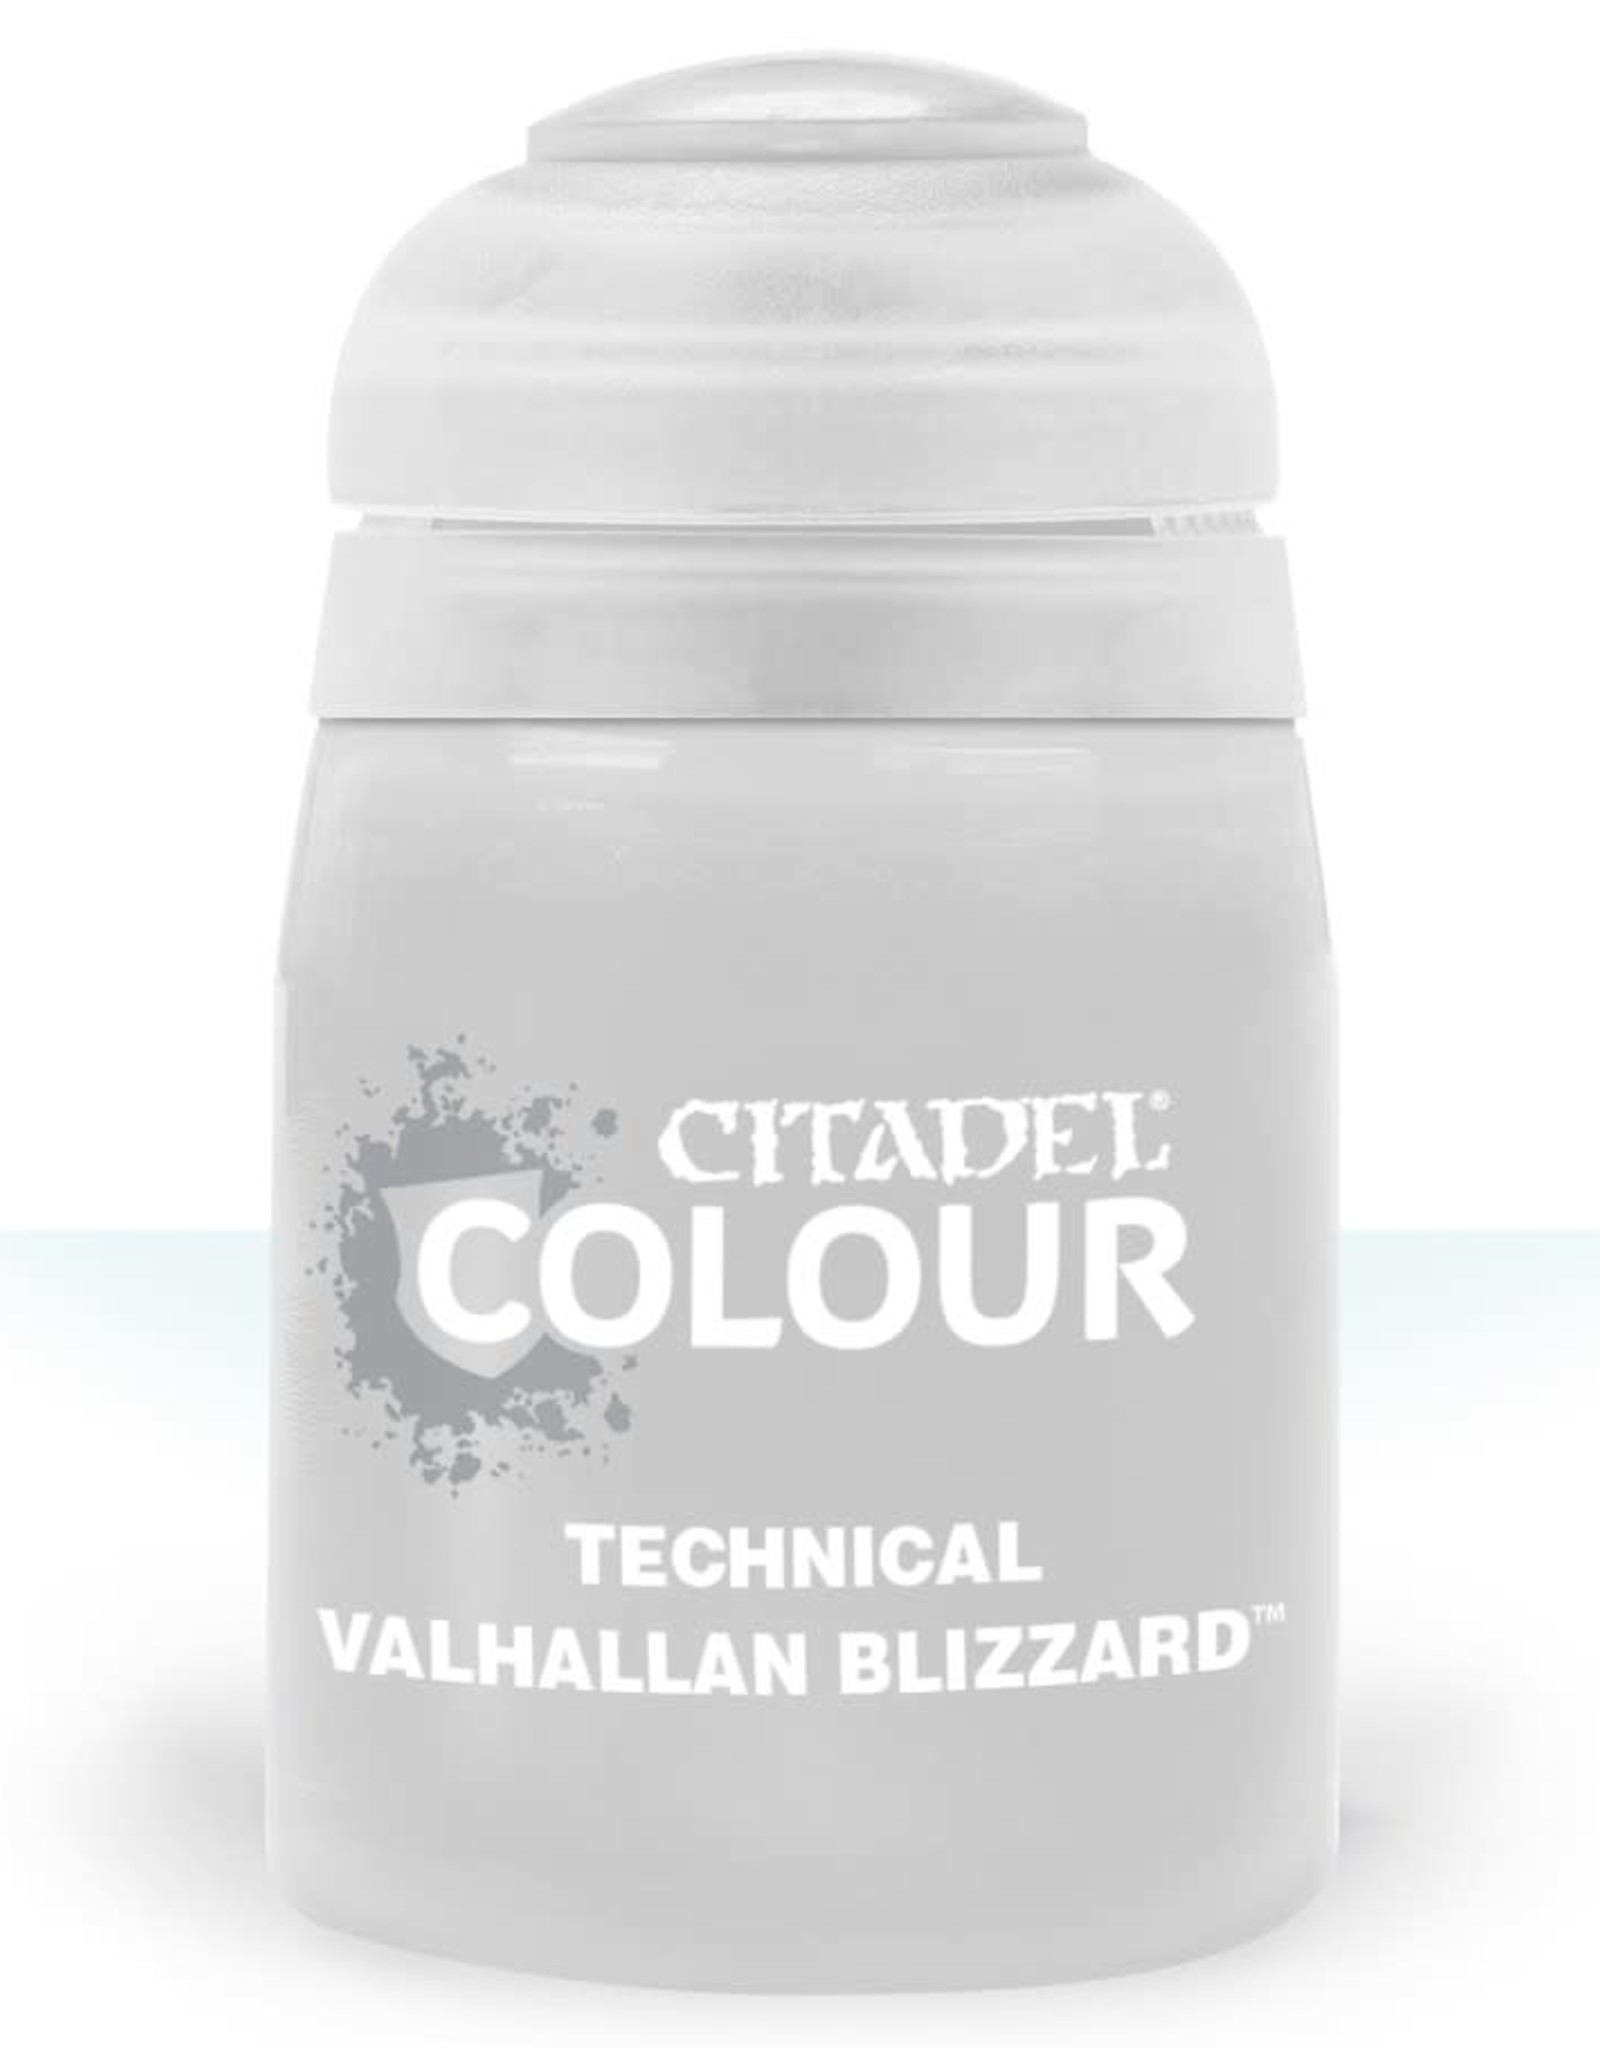 Games Workshop Citadel Paint: Technical - Valhallan Blizzard 24ml